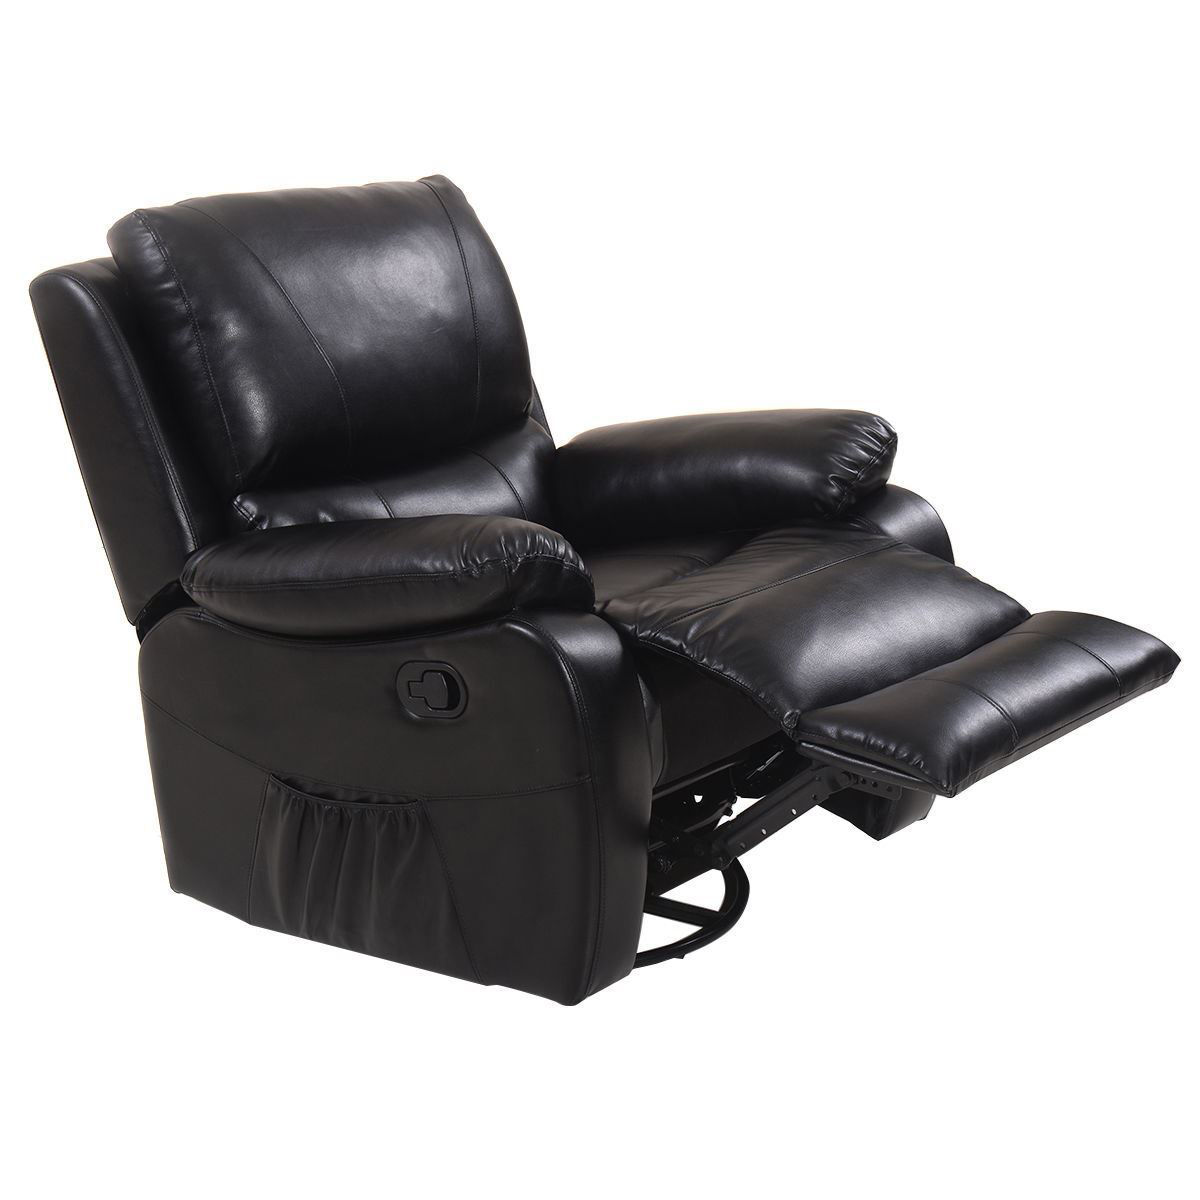 Picture of Ergonomic Executive Heated Deluxe Recliner Massage Chair Lounge with Control